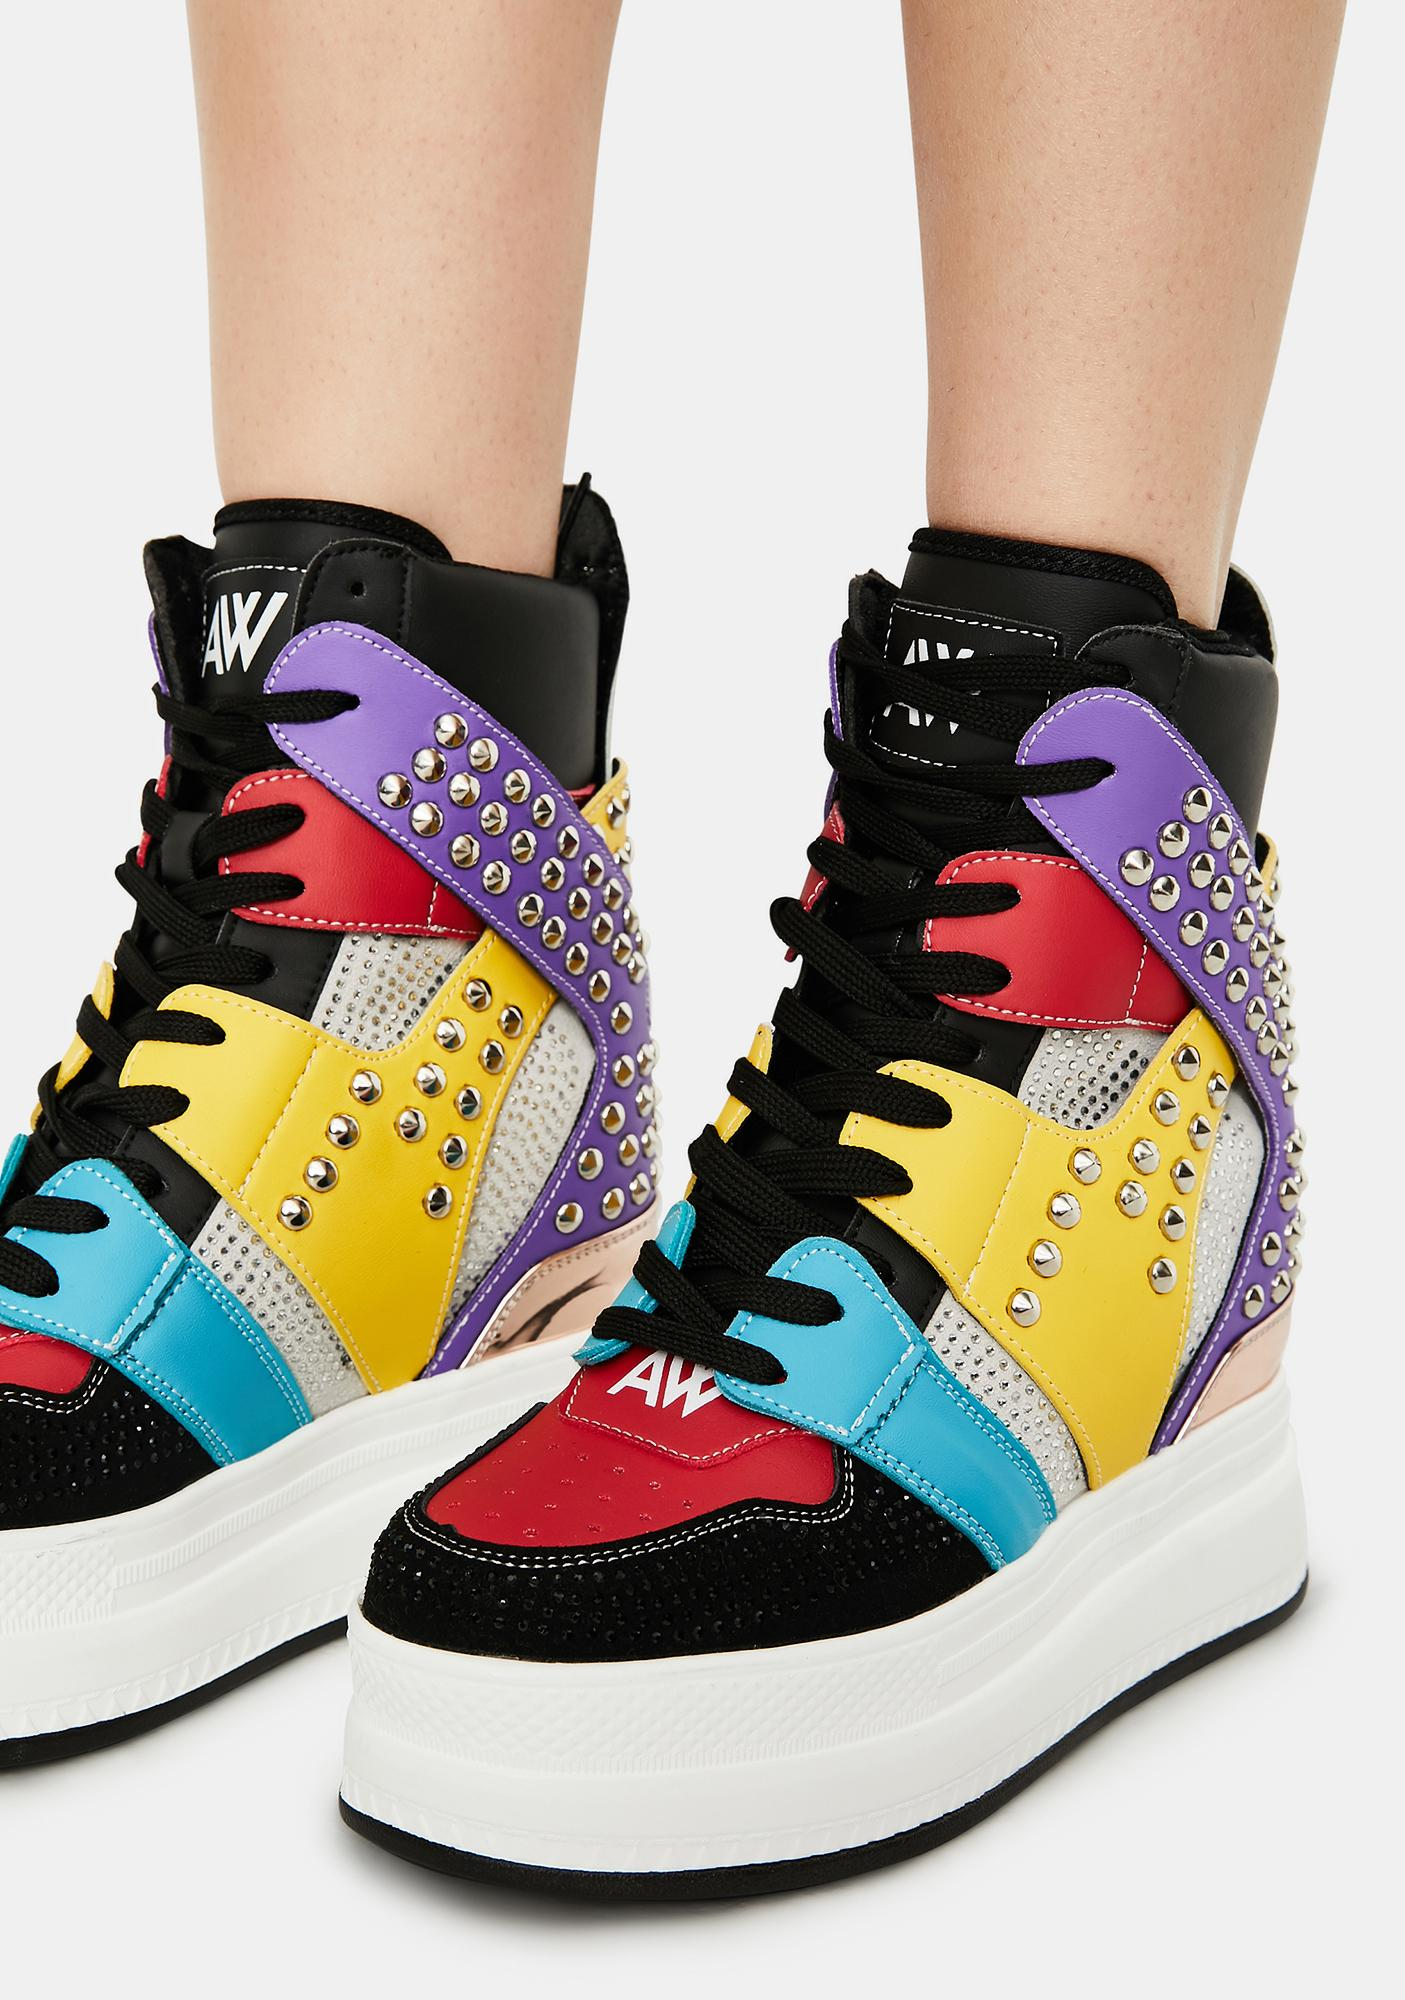 Anthony Wang Rainbow Quince Studded Wedge Sneakers